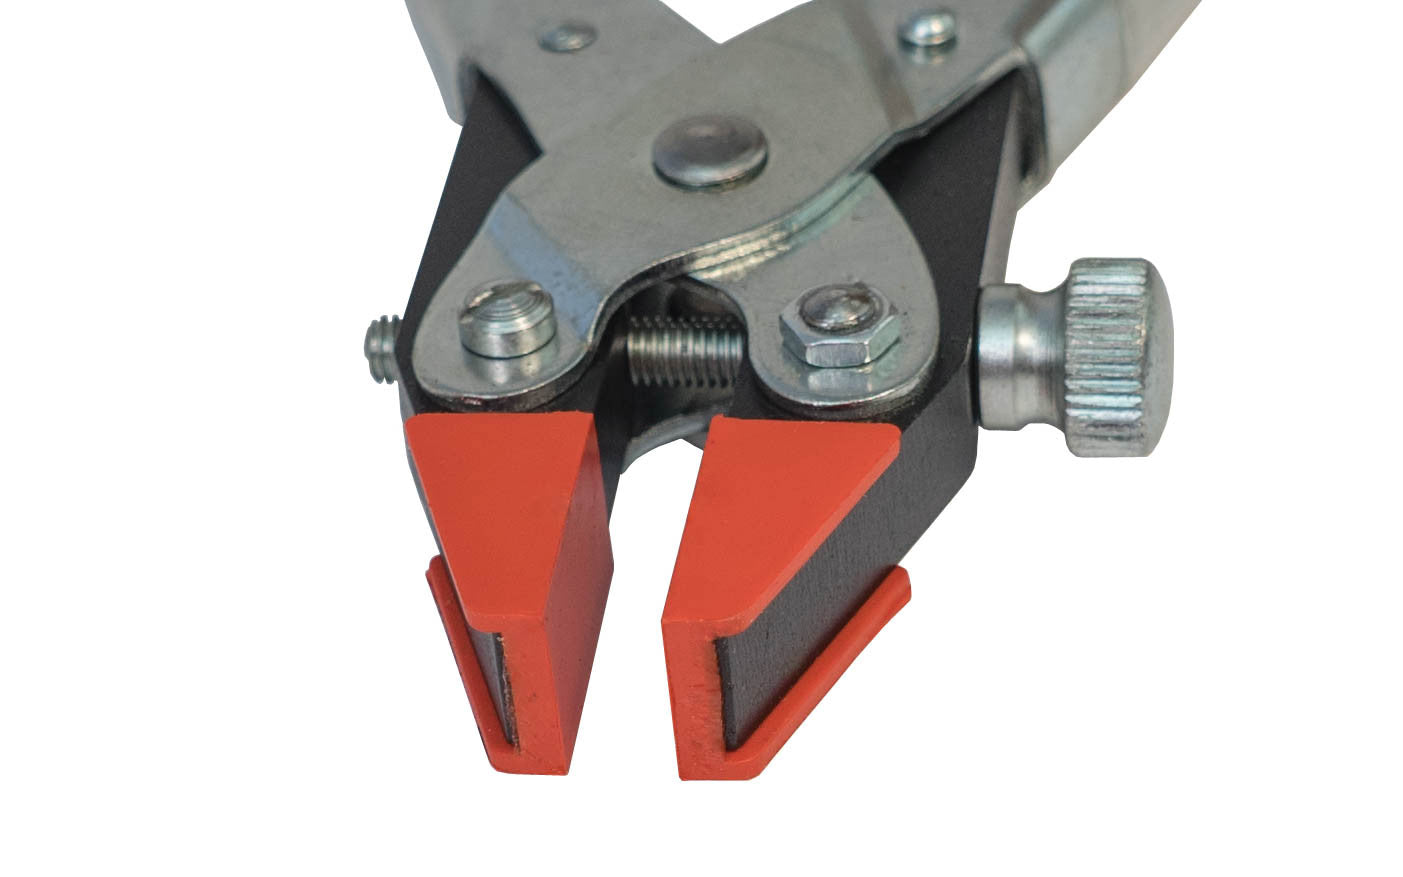 Maun Parallel Action Clamping Plier ~ Smooth Plastic Jaws Closeup